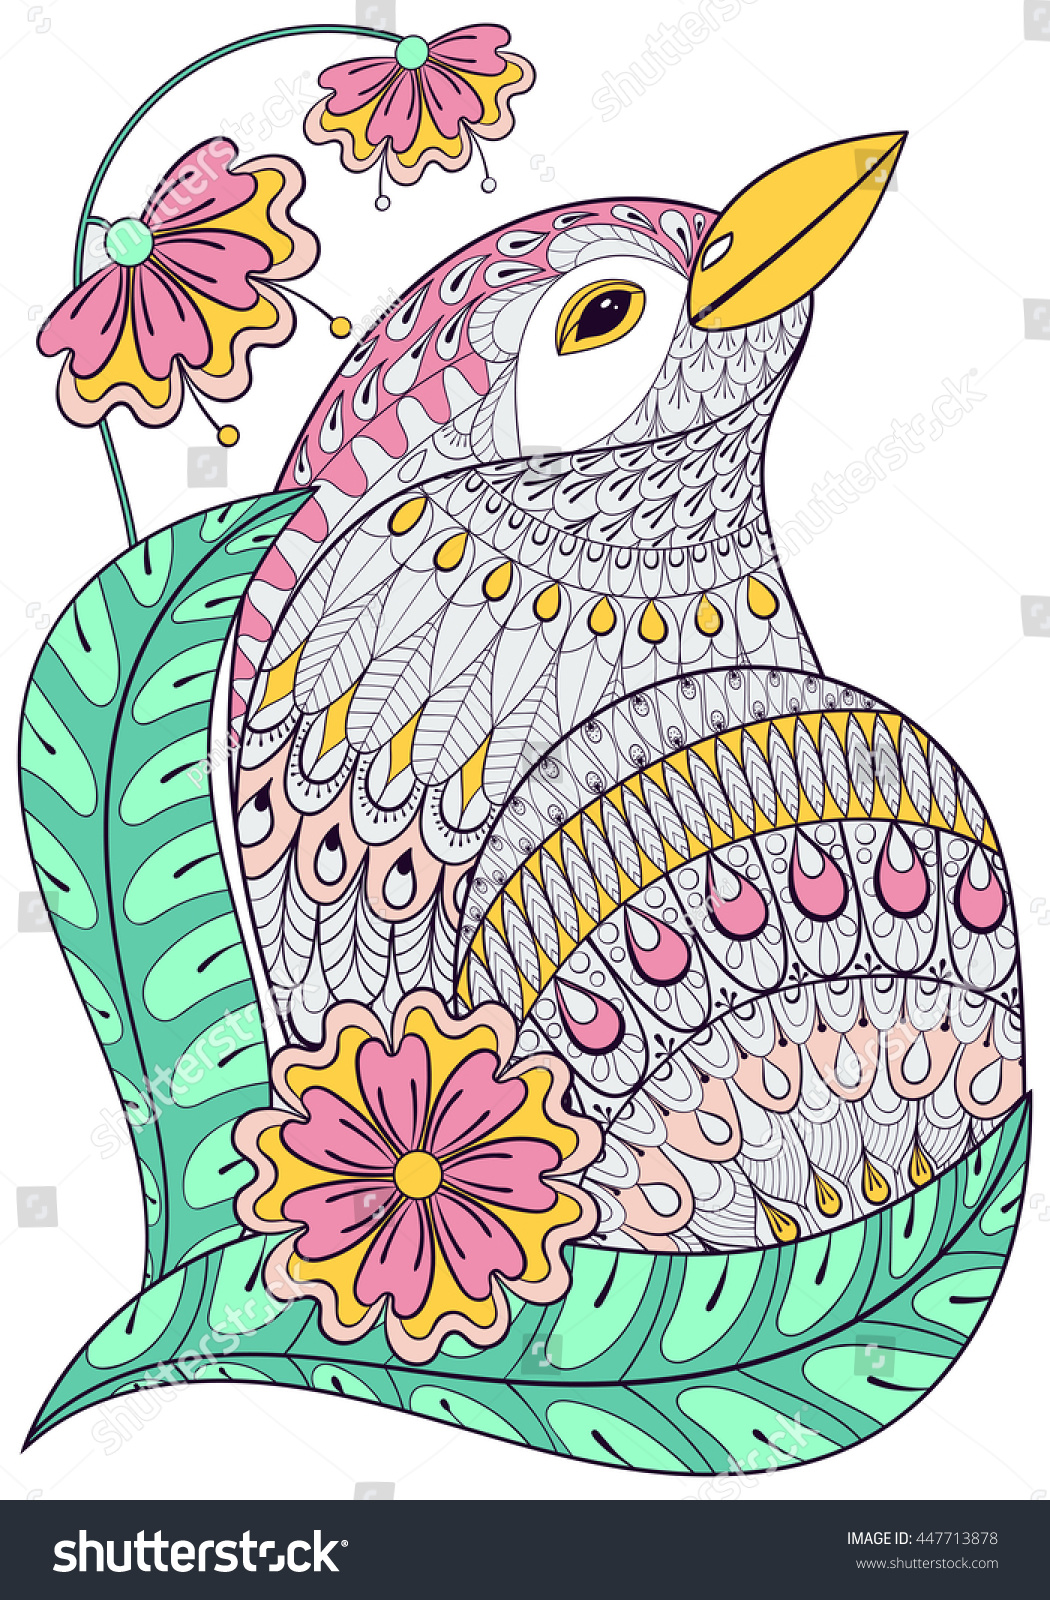 Zentangle Exotic Bird In Colorful Flowers Hand Drawn Ethnic Animal For Adult Coloring Pages